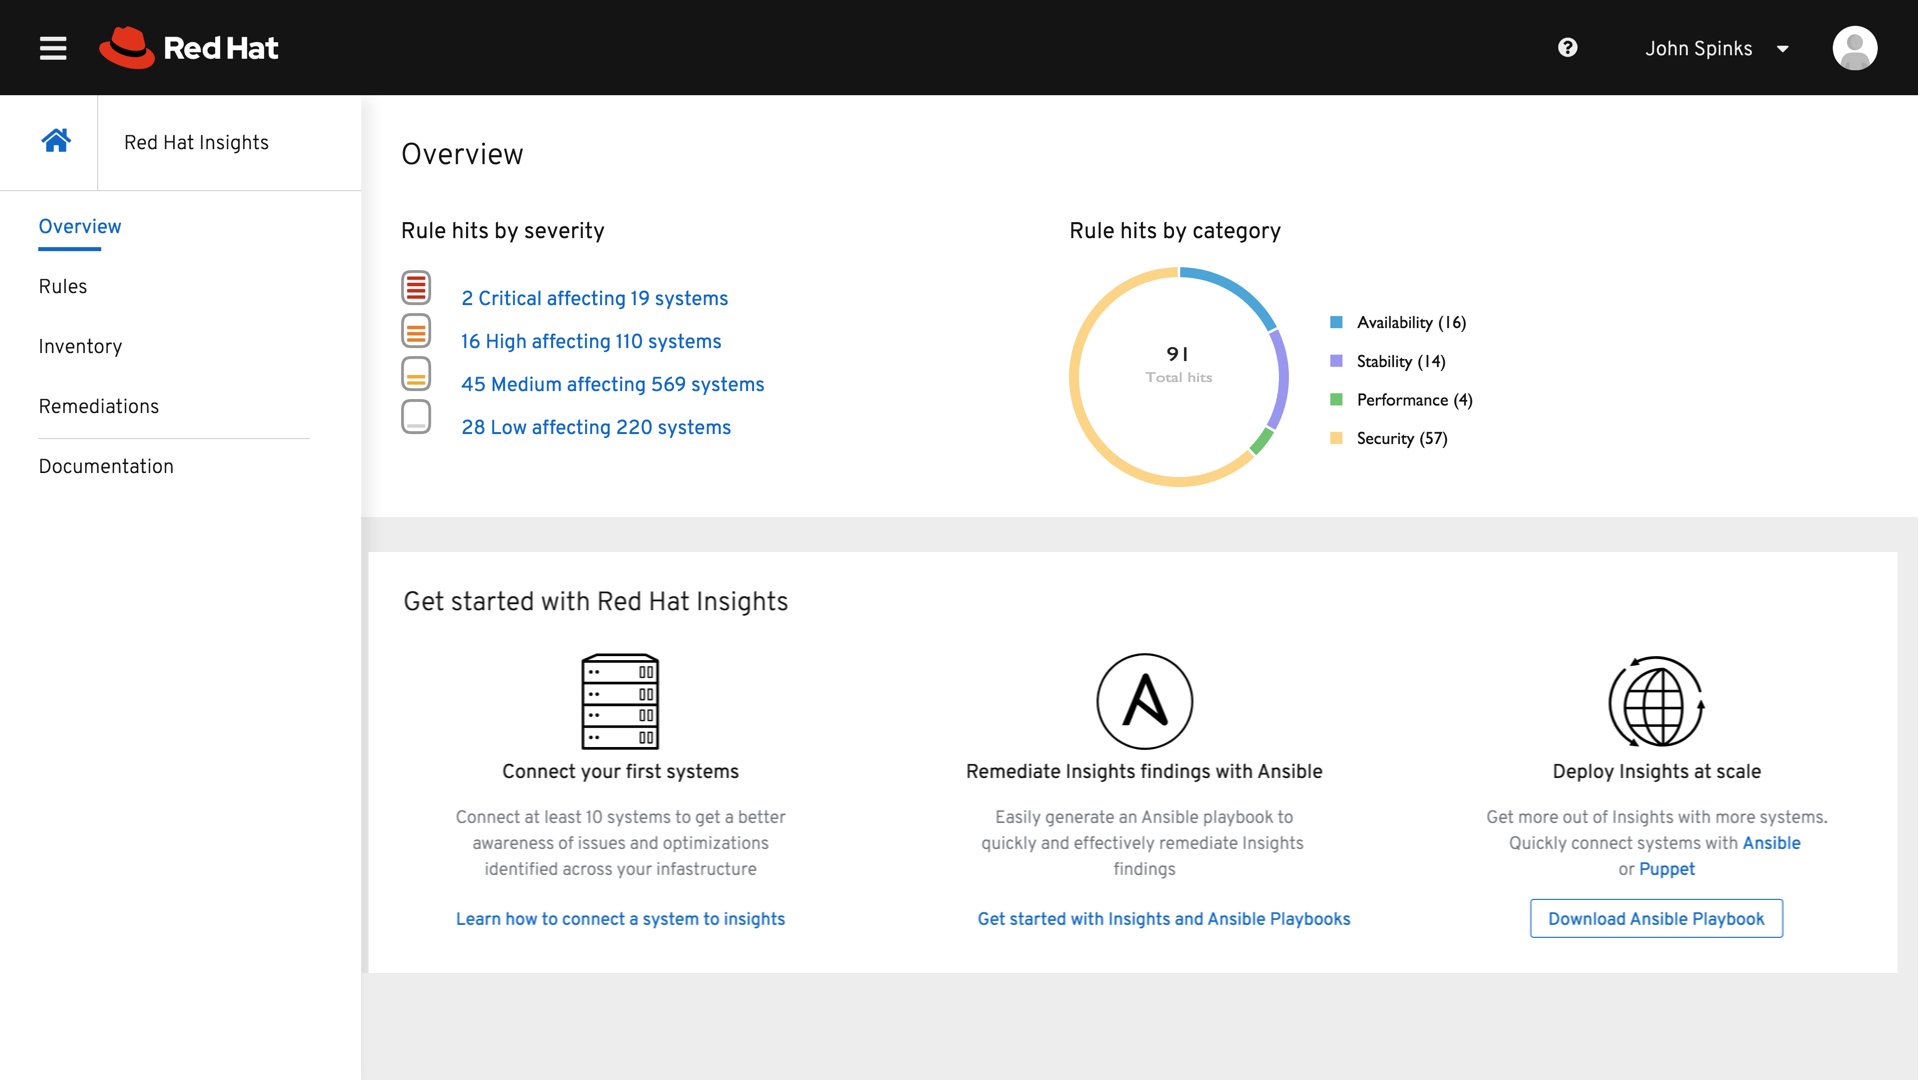 Red Hat Insights Overview Page